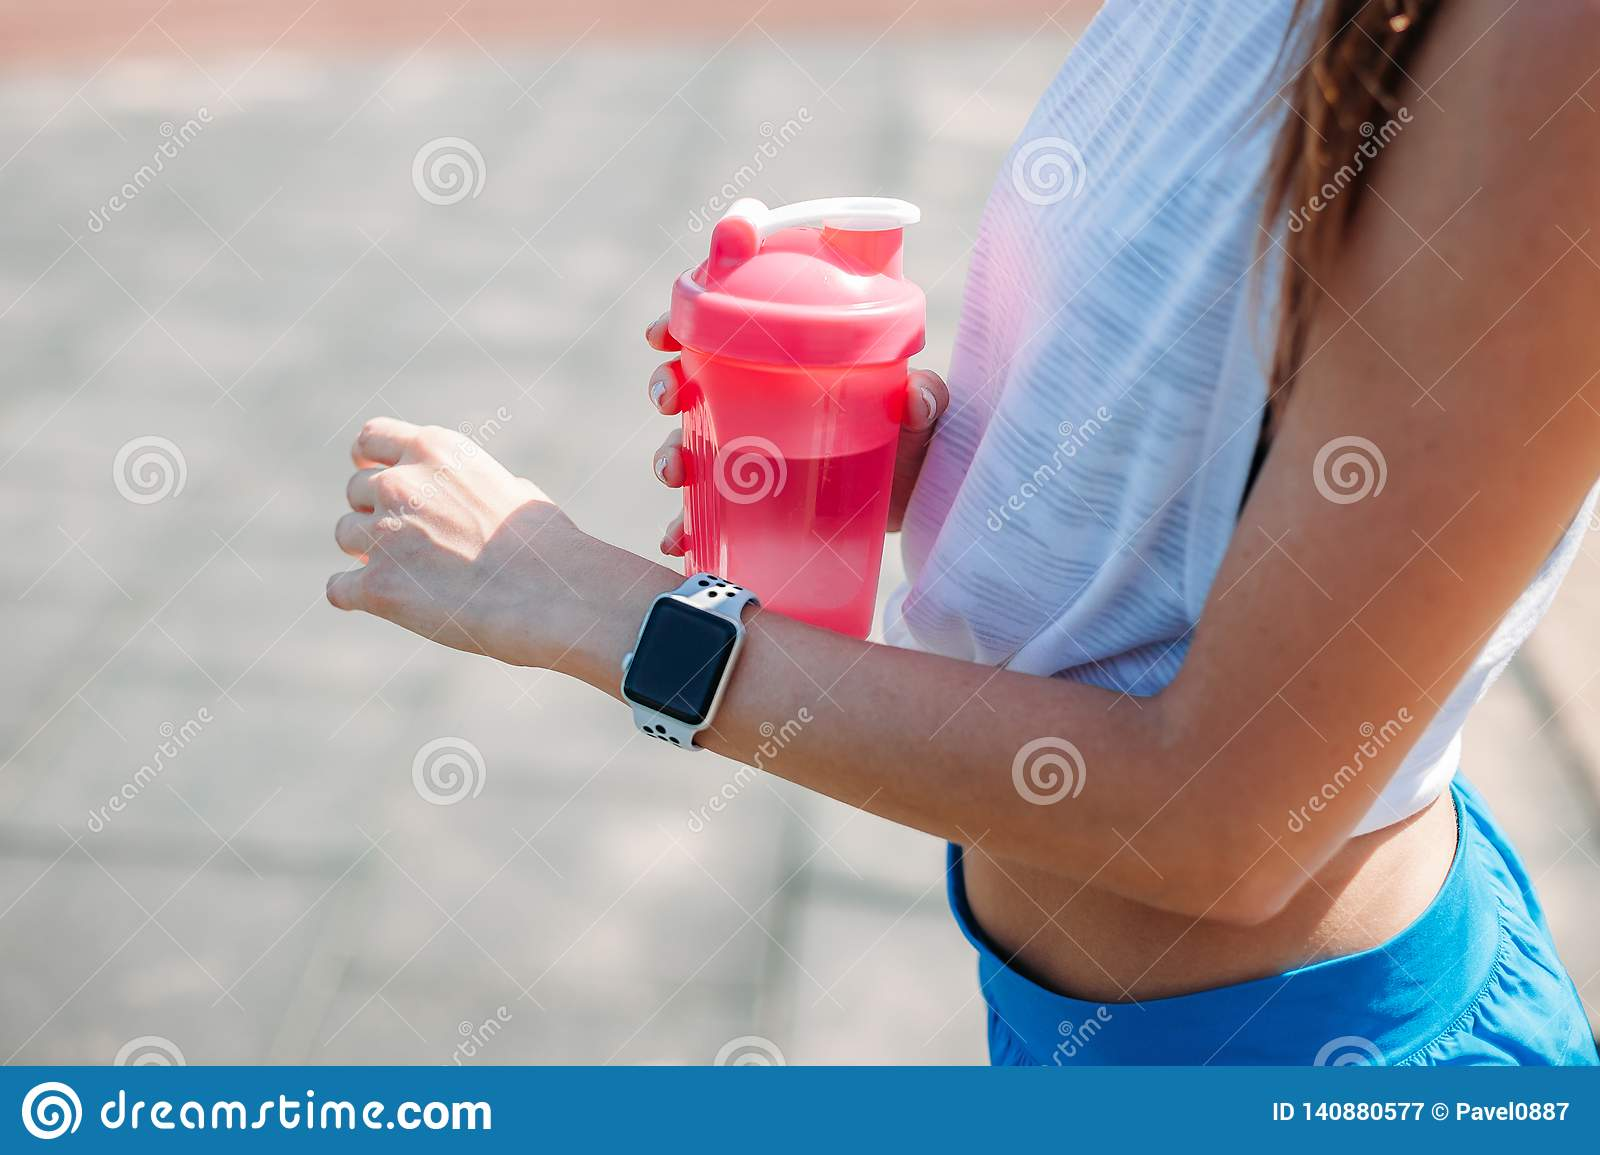 Happy woman using smartwatch for checks results in fitness app. Female athlete wearing sport tracker wristband arm. Healthy